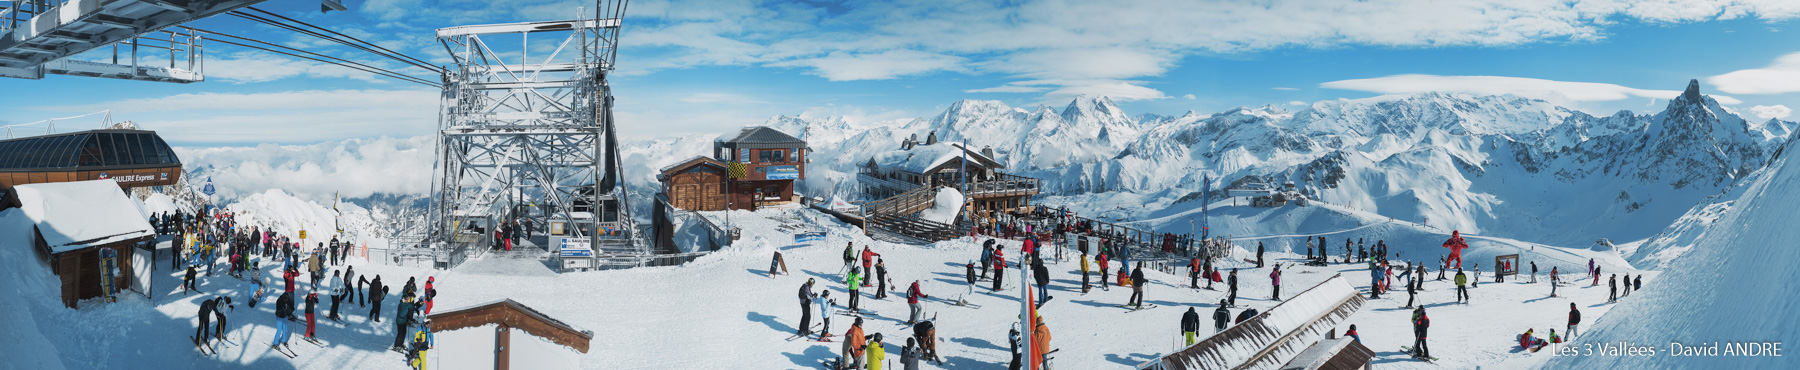 Meribel Courchevel